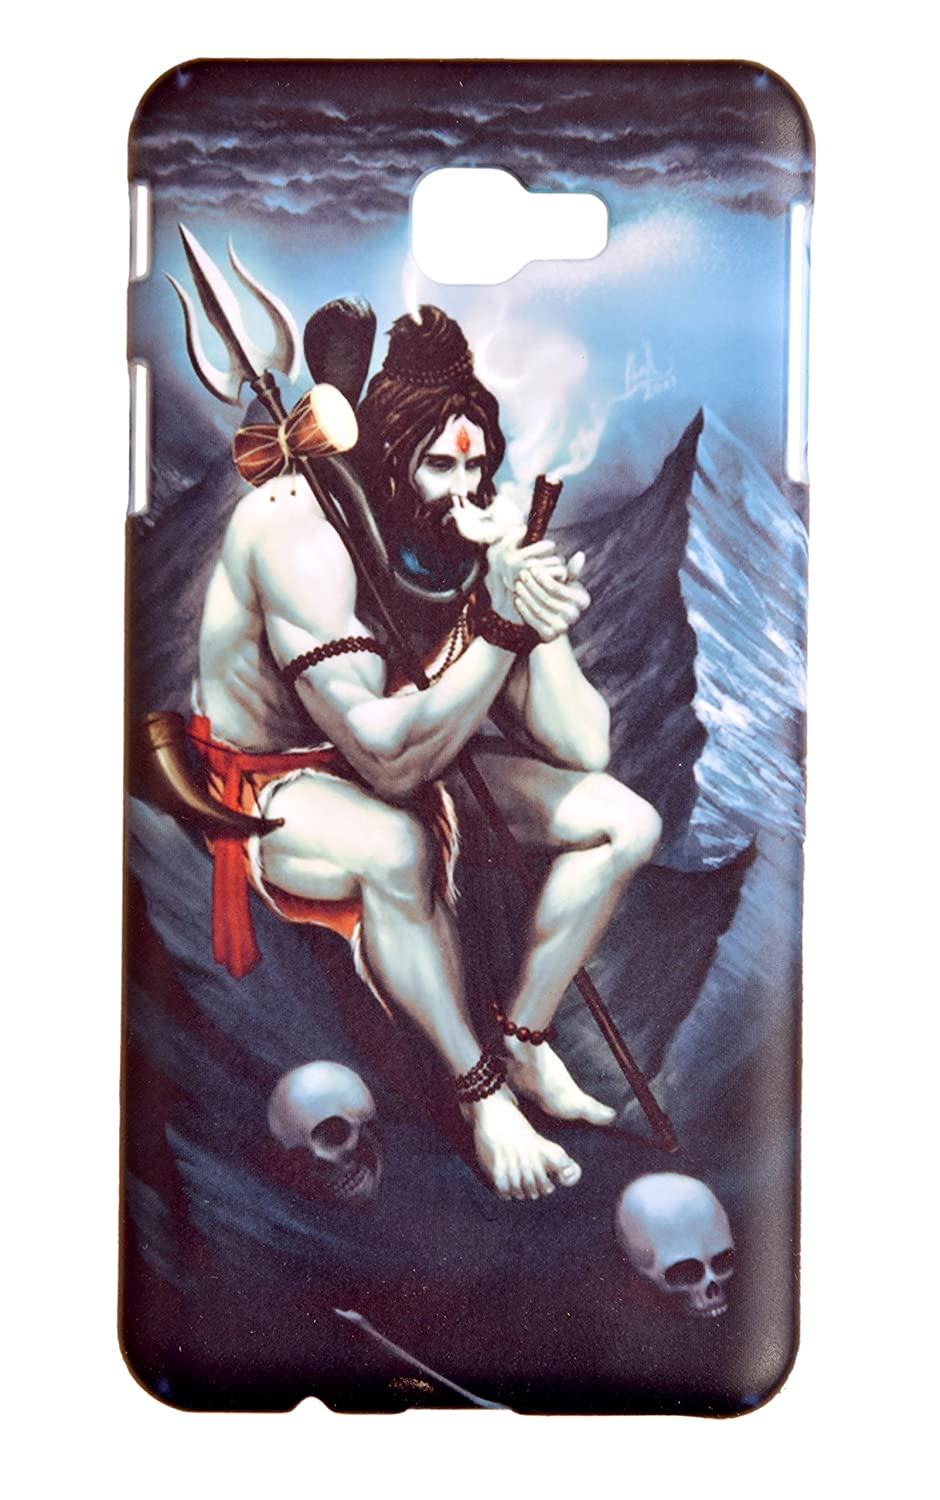 pic of lord shiva with chilam